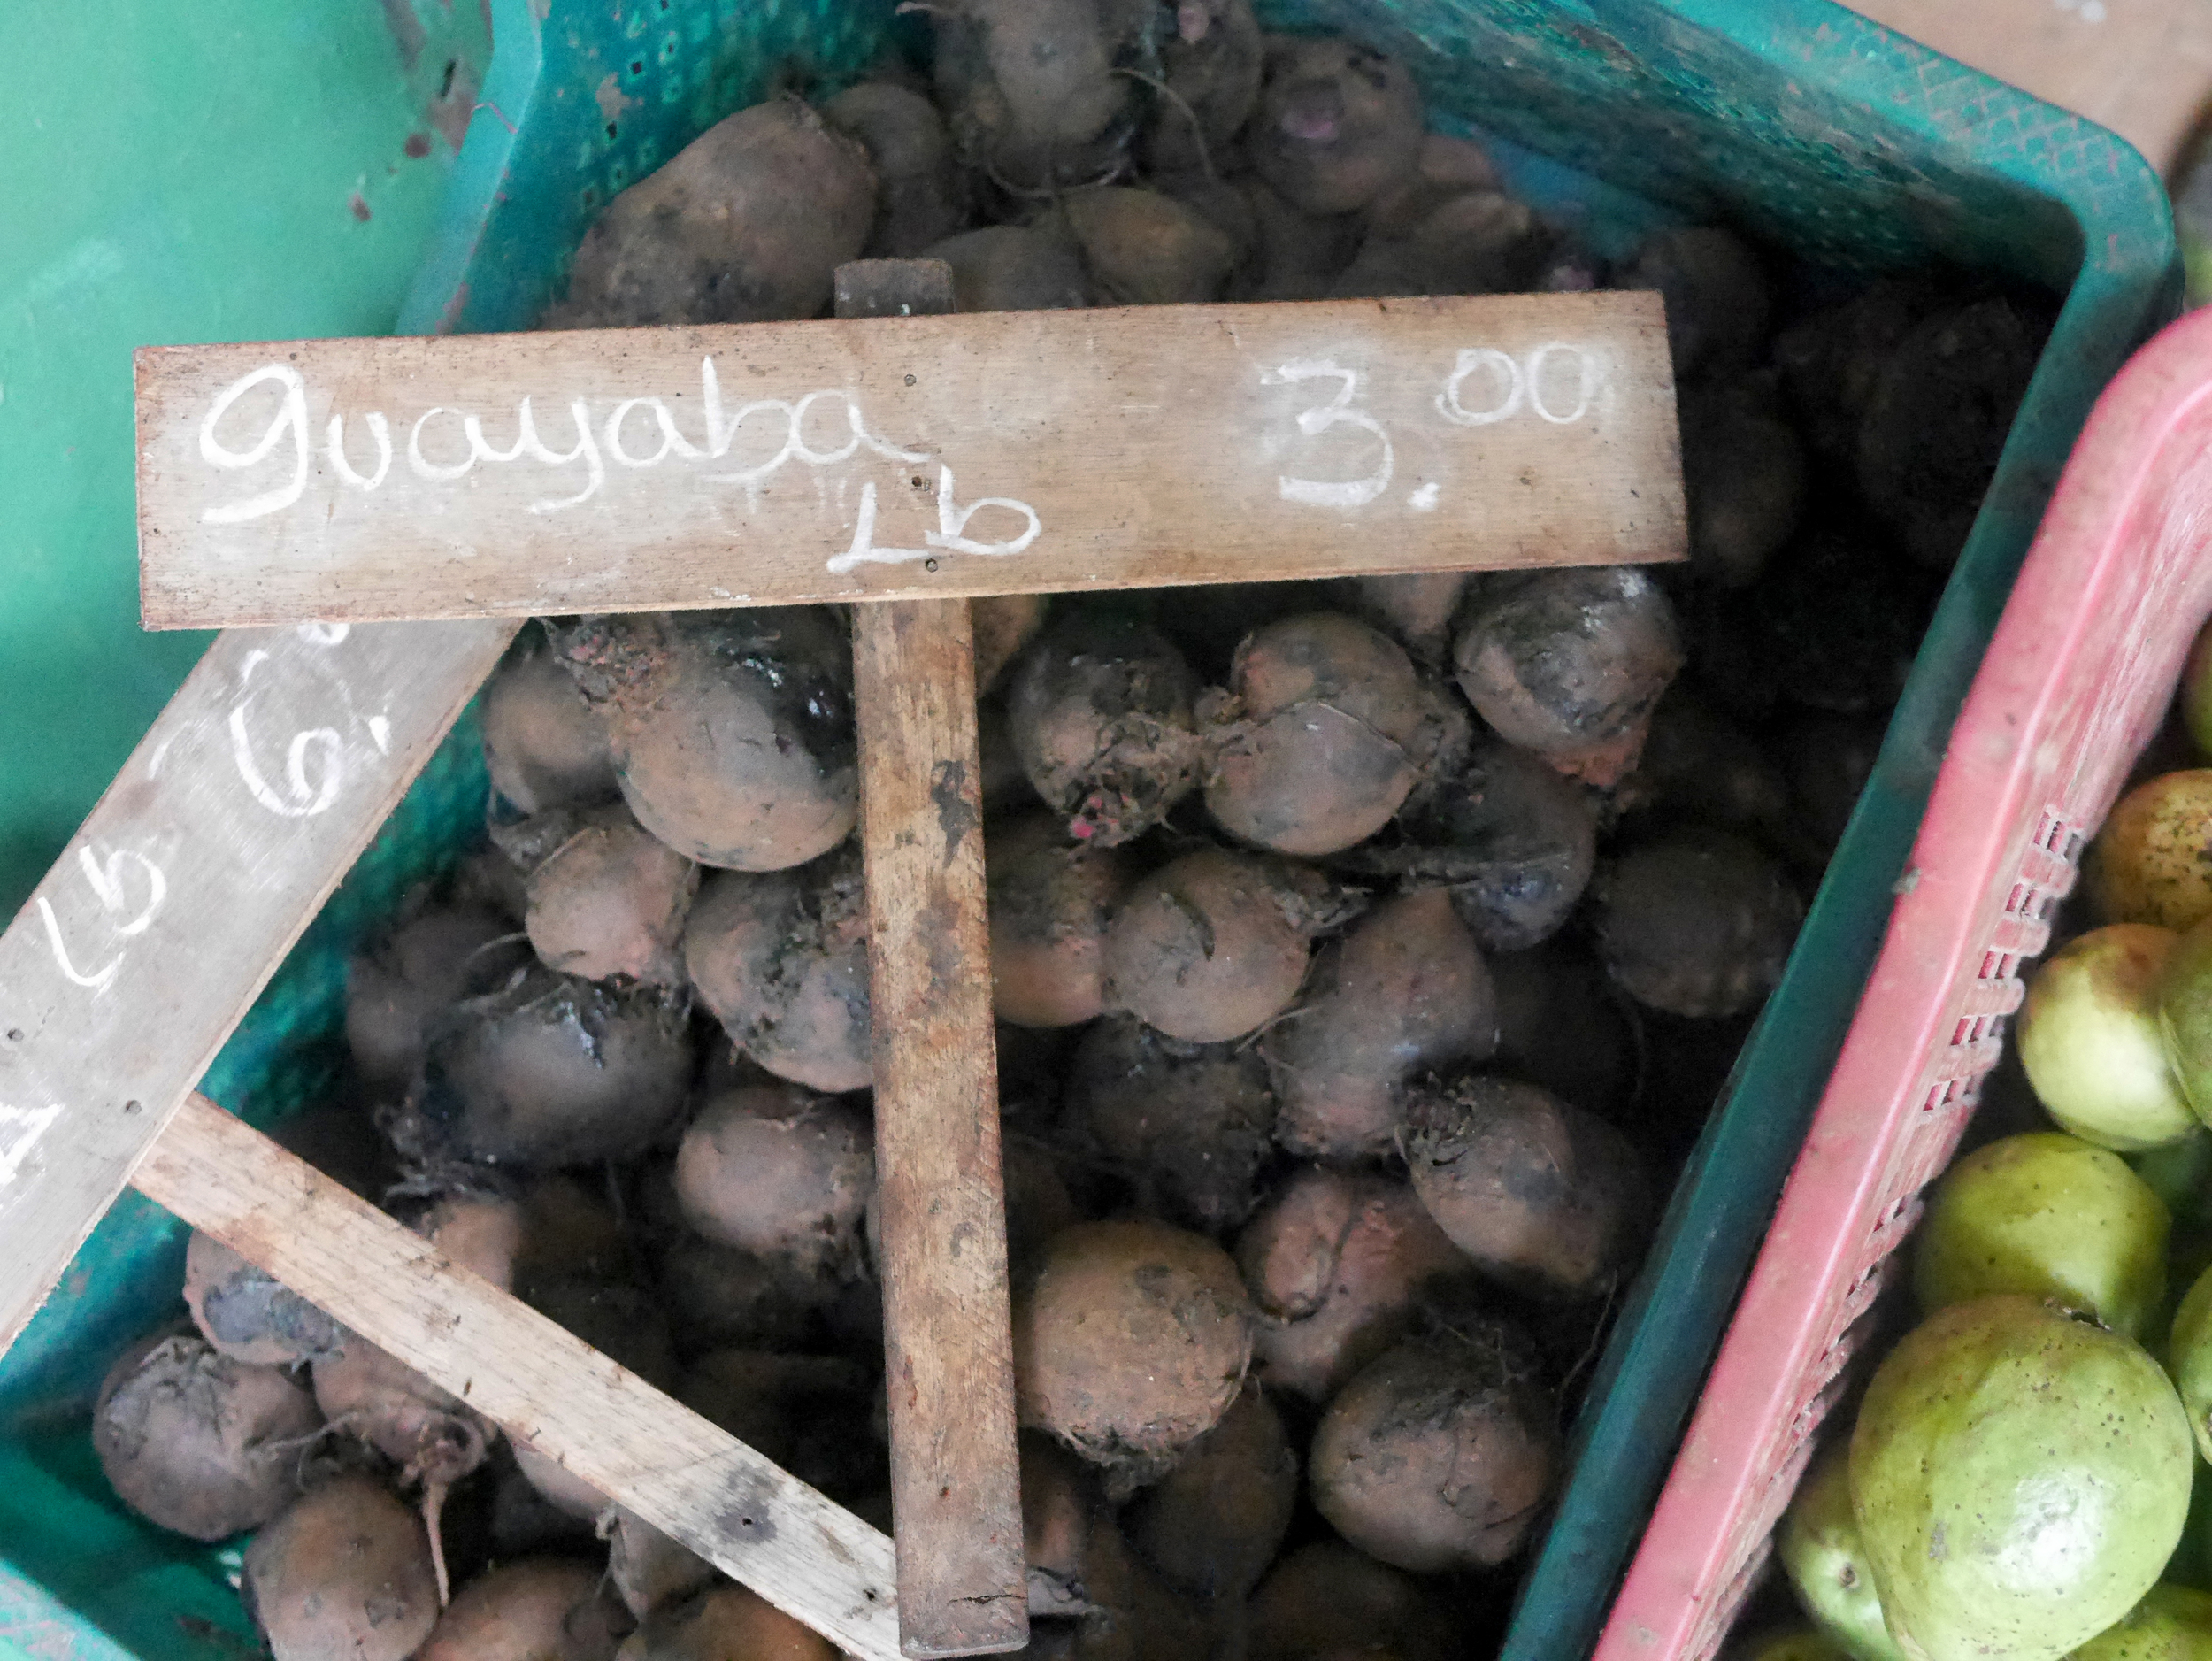 Guayaba... which I think is Taro root in english.